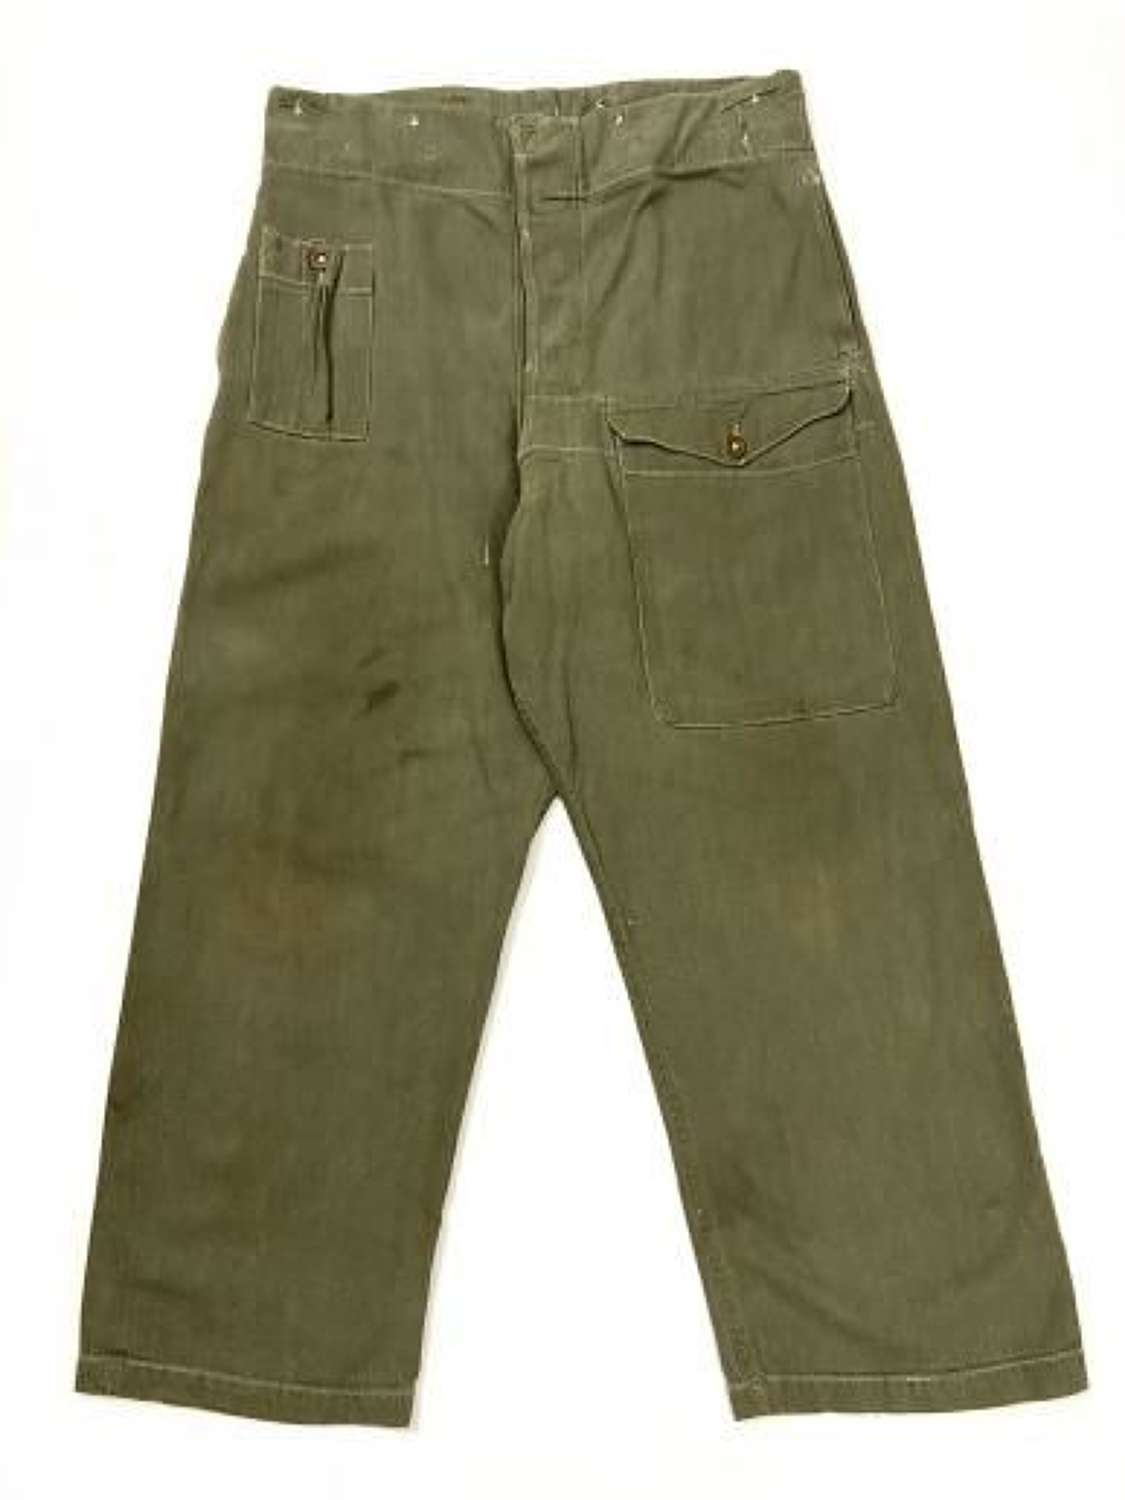 Original British Army Denim Battledress Trousers